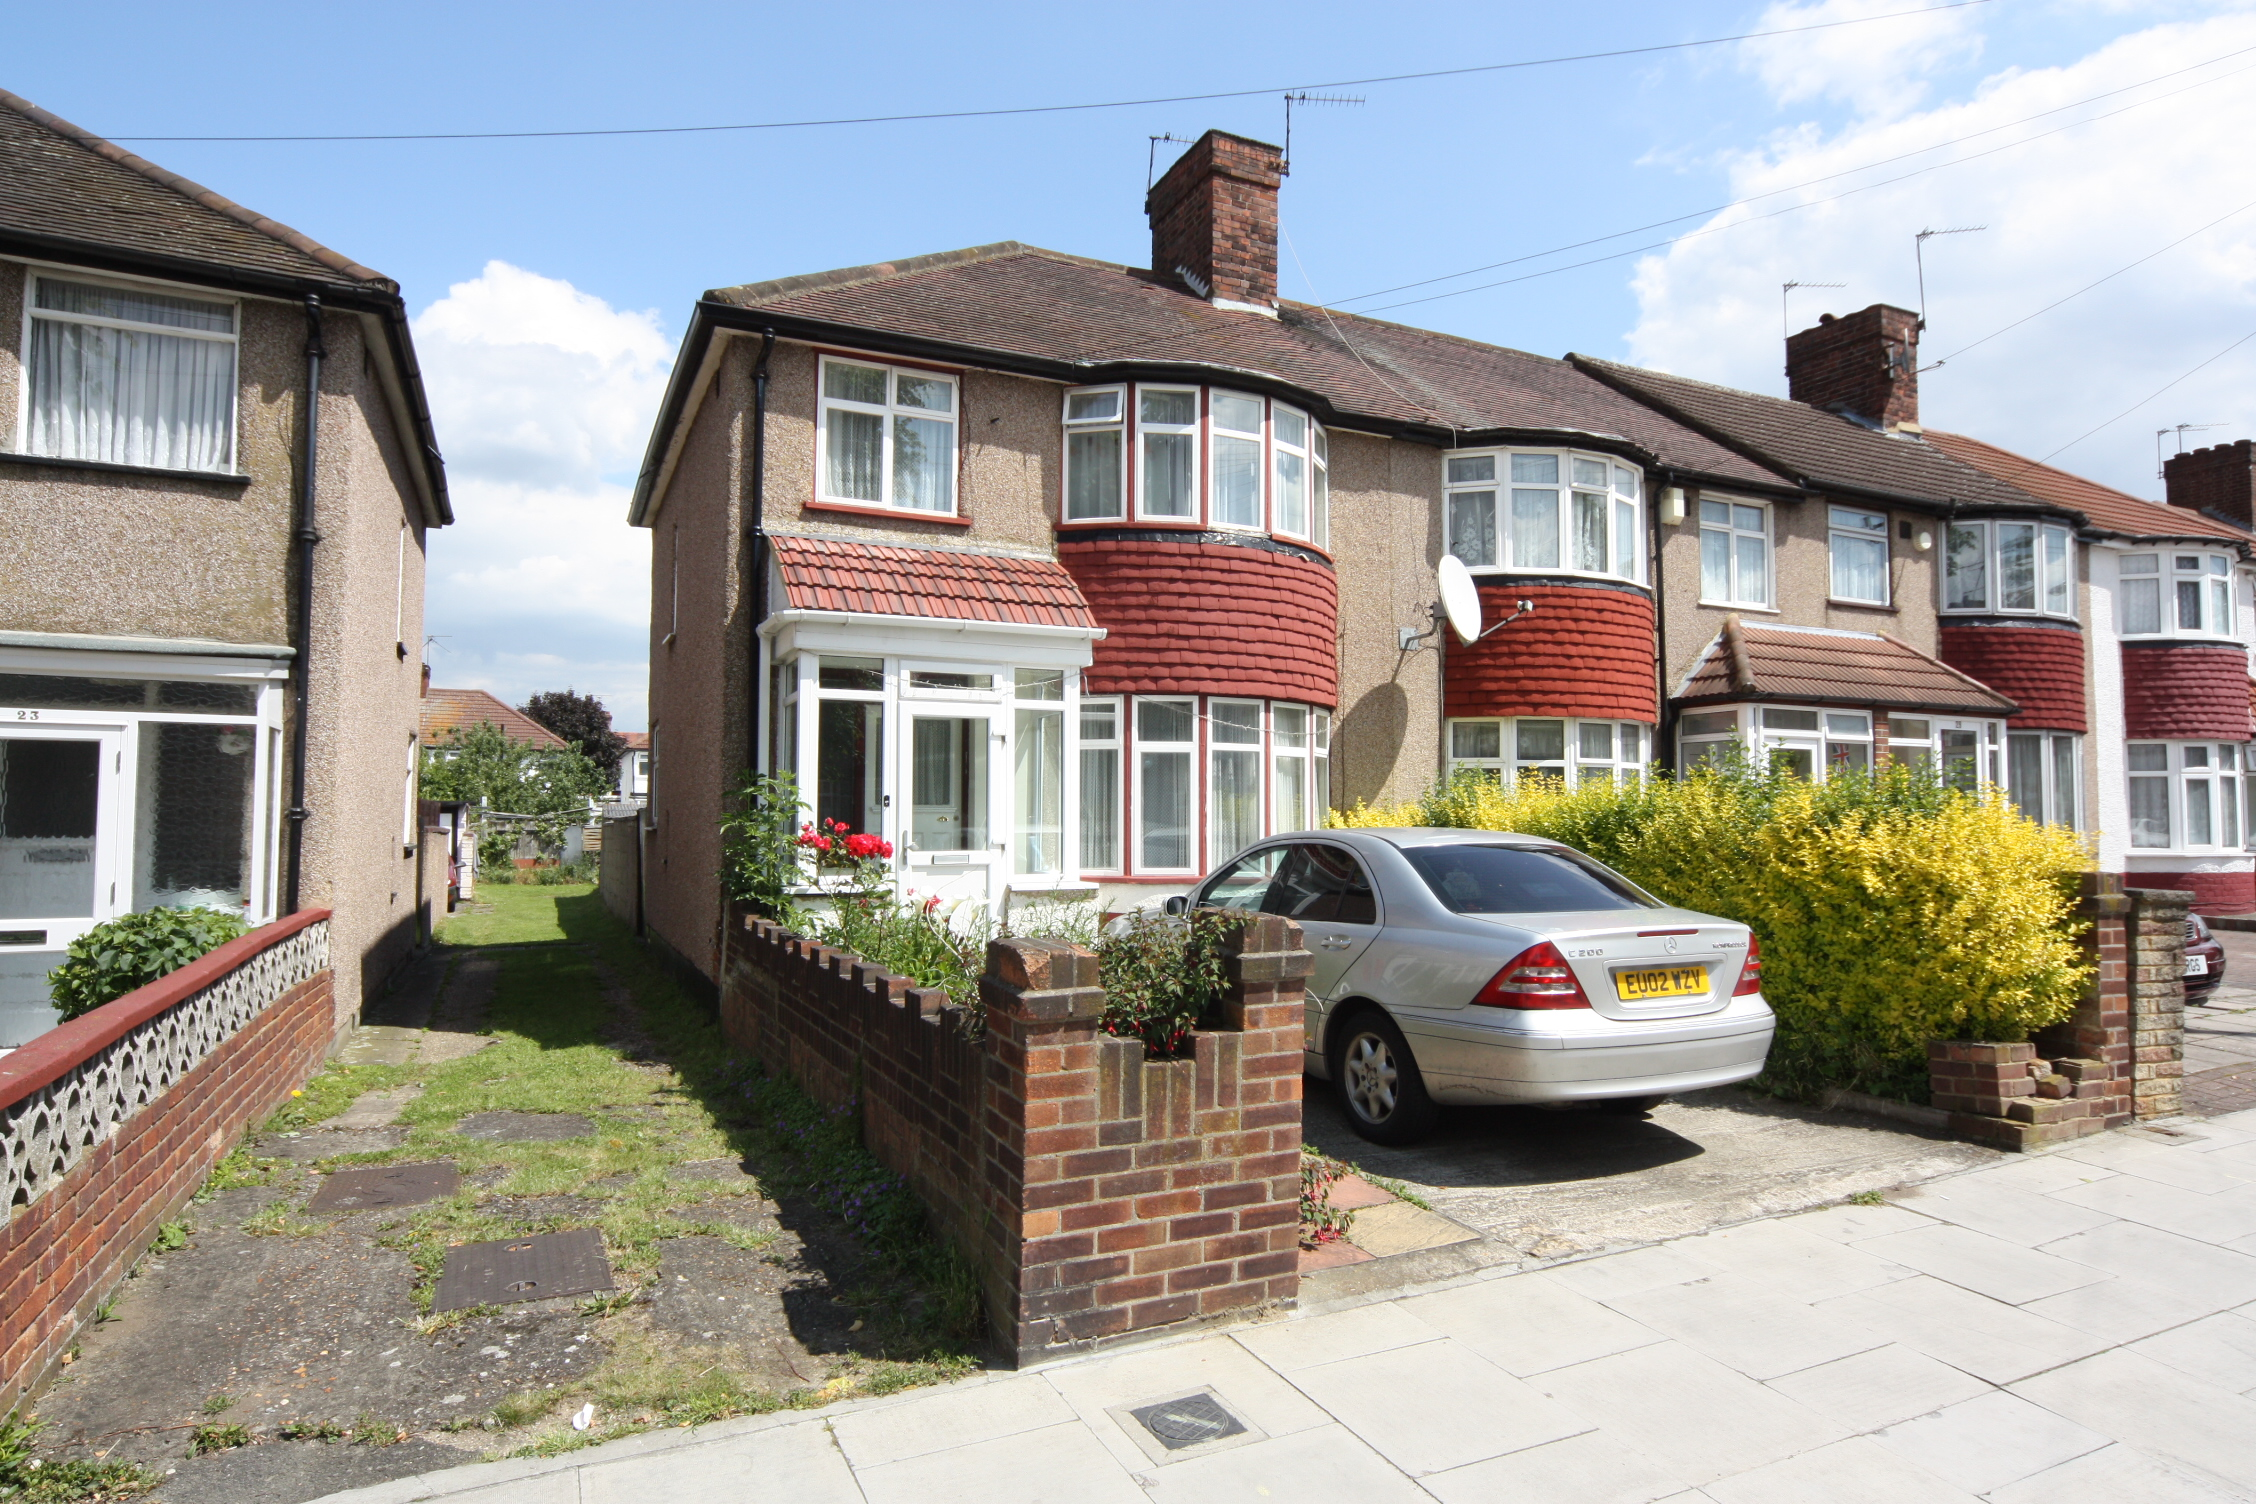 Perivale, Middlesex